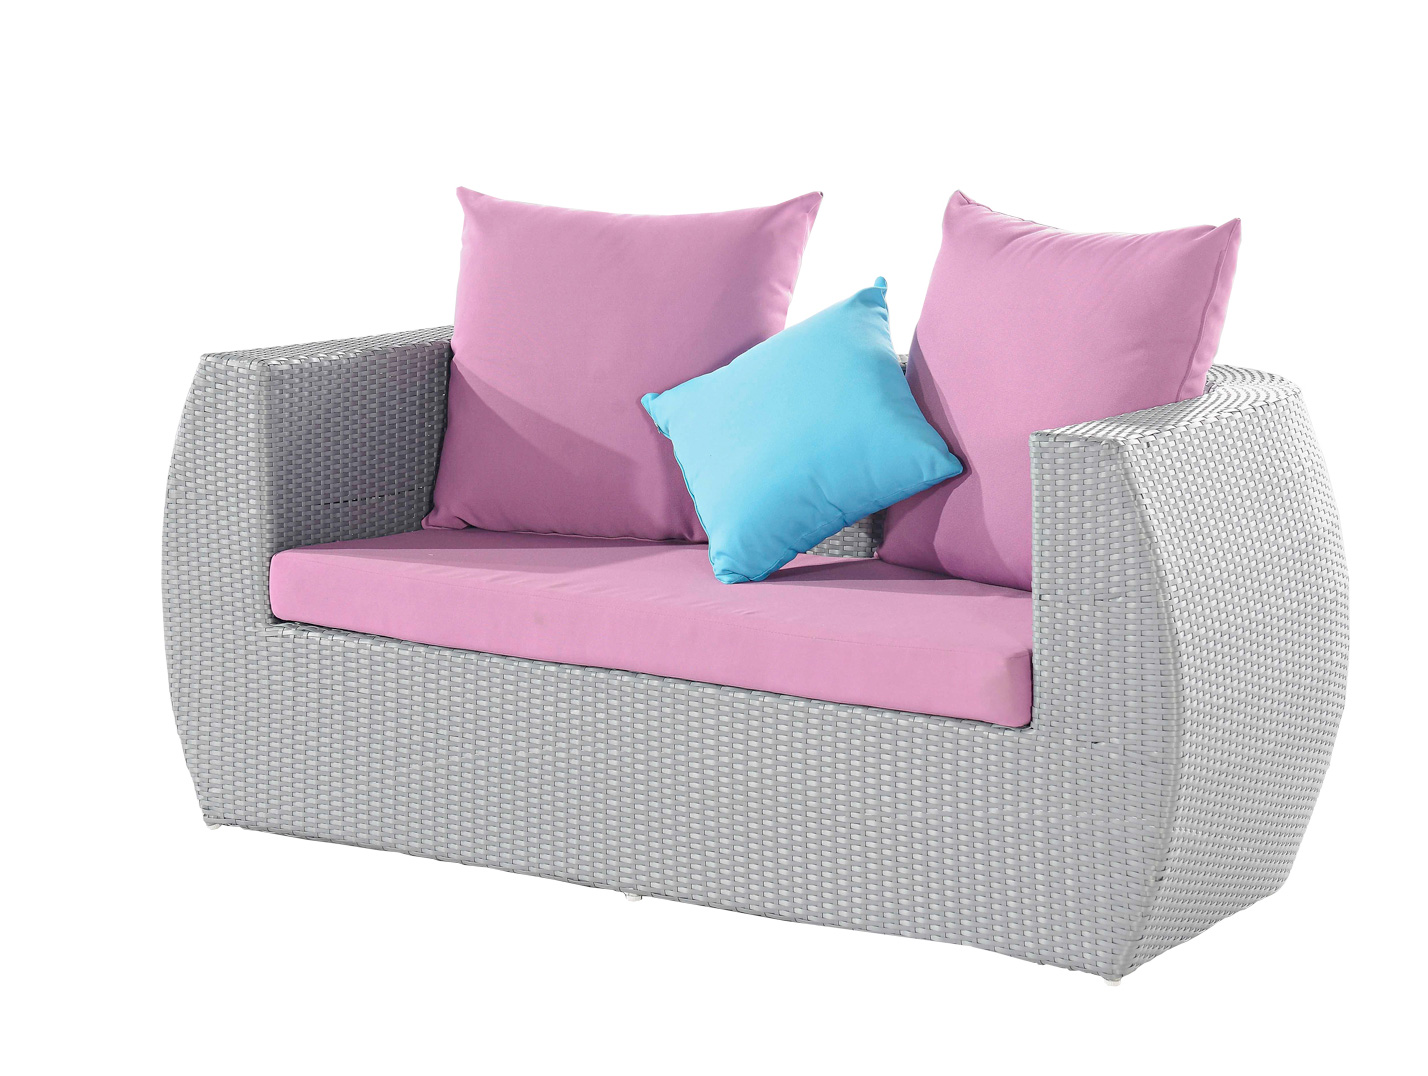 Tranquility Outdoor Sofa By Andrew Richards ·  Http://adorable Home.com/wp Content/uploads/ Pictures